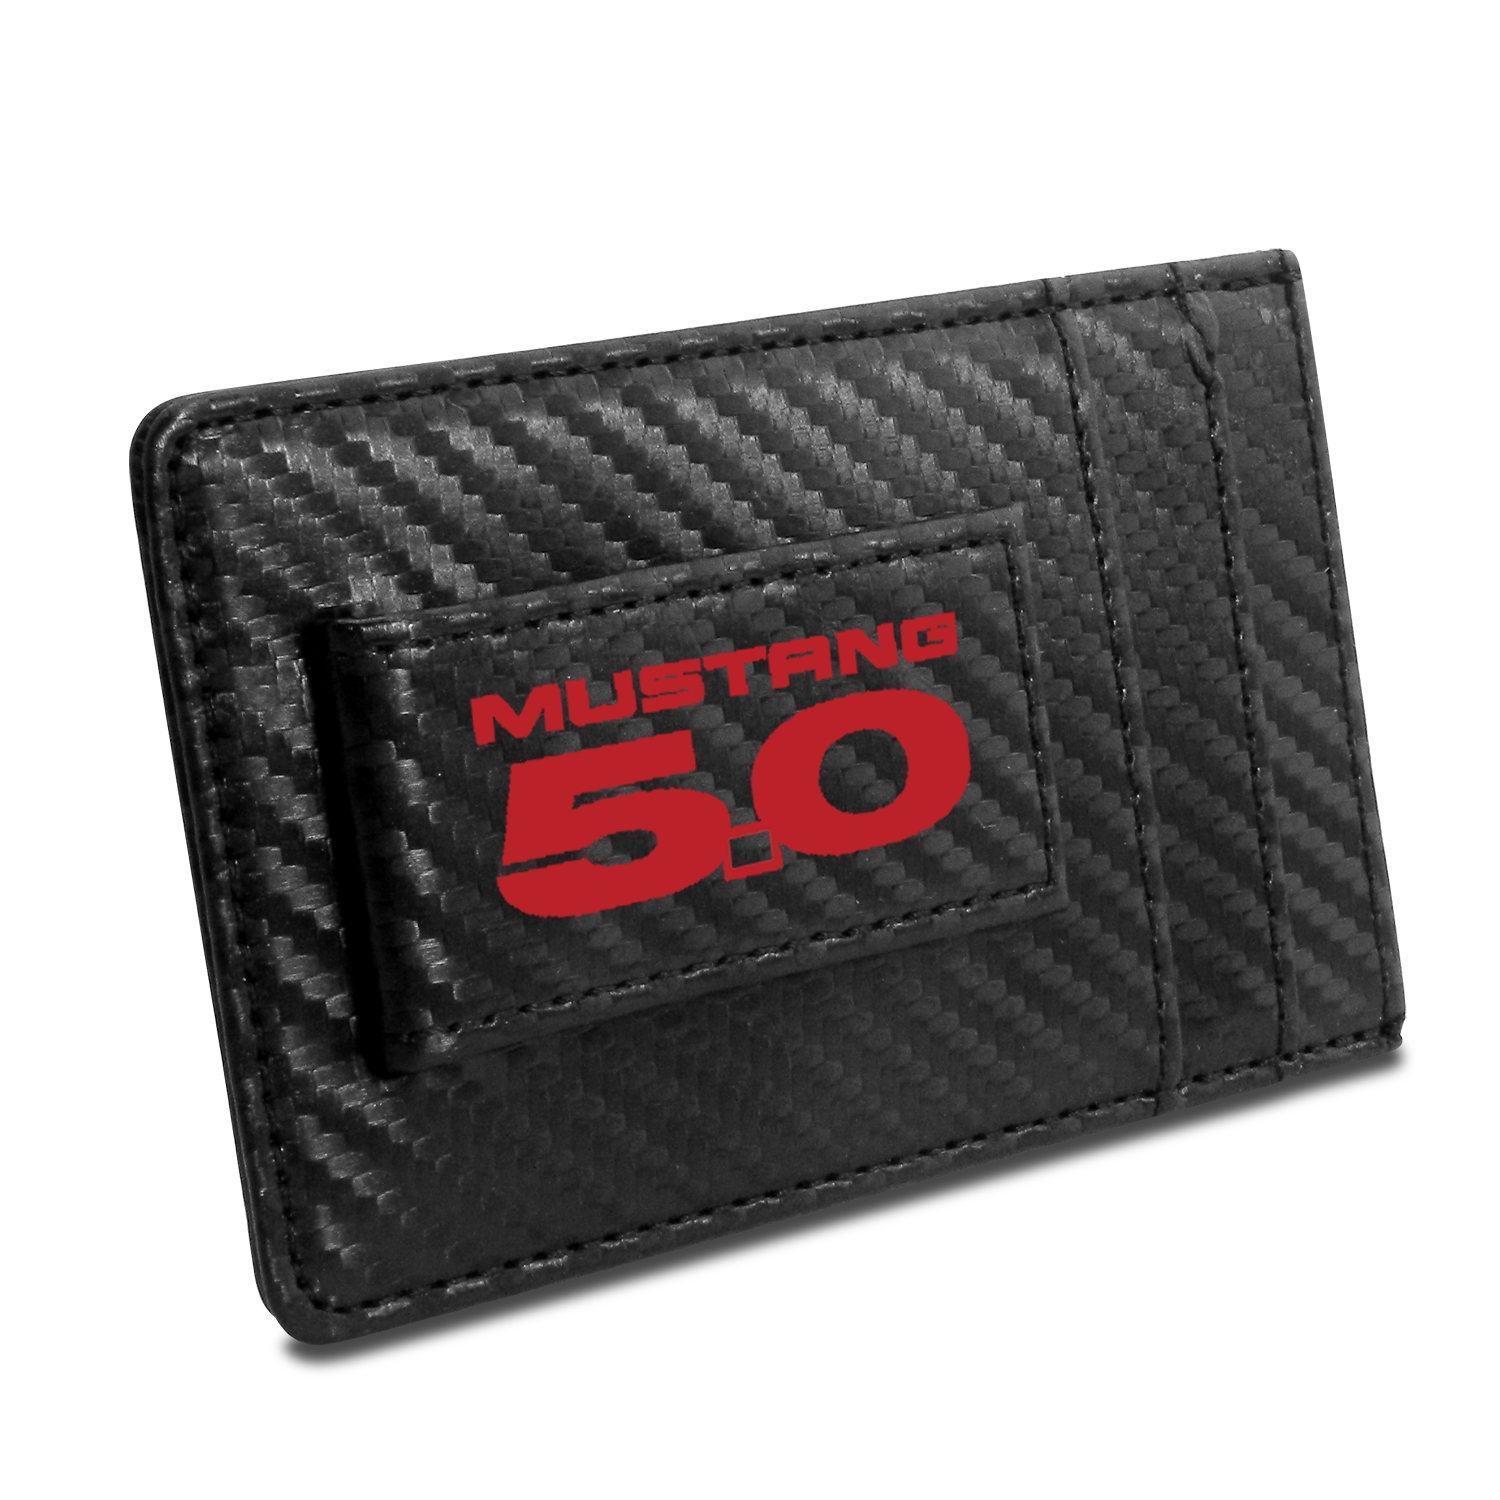 Ford Mustang 5.0 in Red Black Carbon Fiber RFID Card Holder Wallet